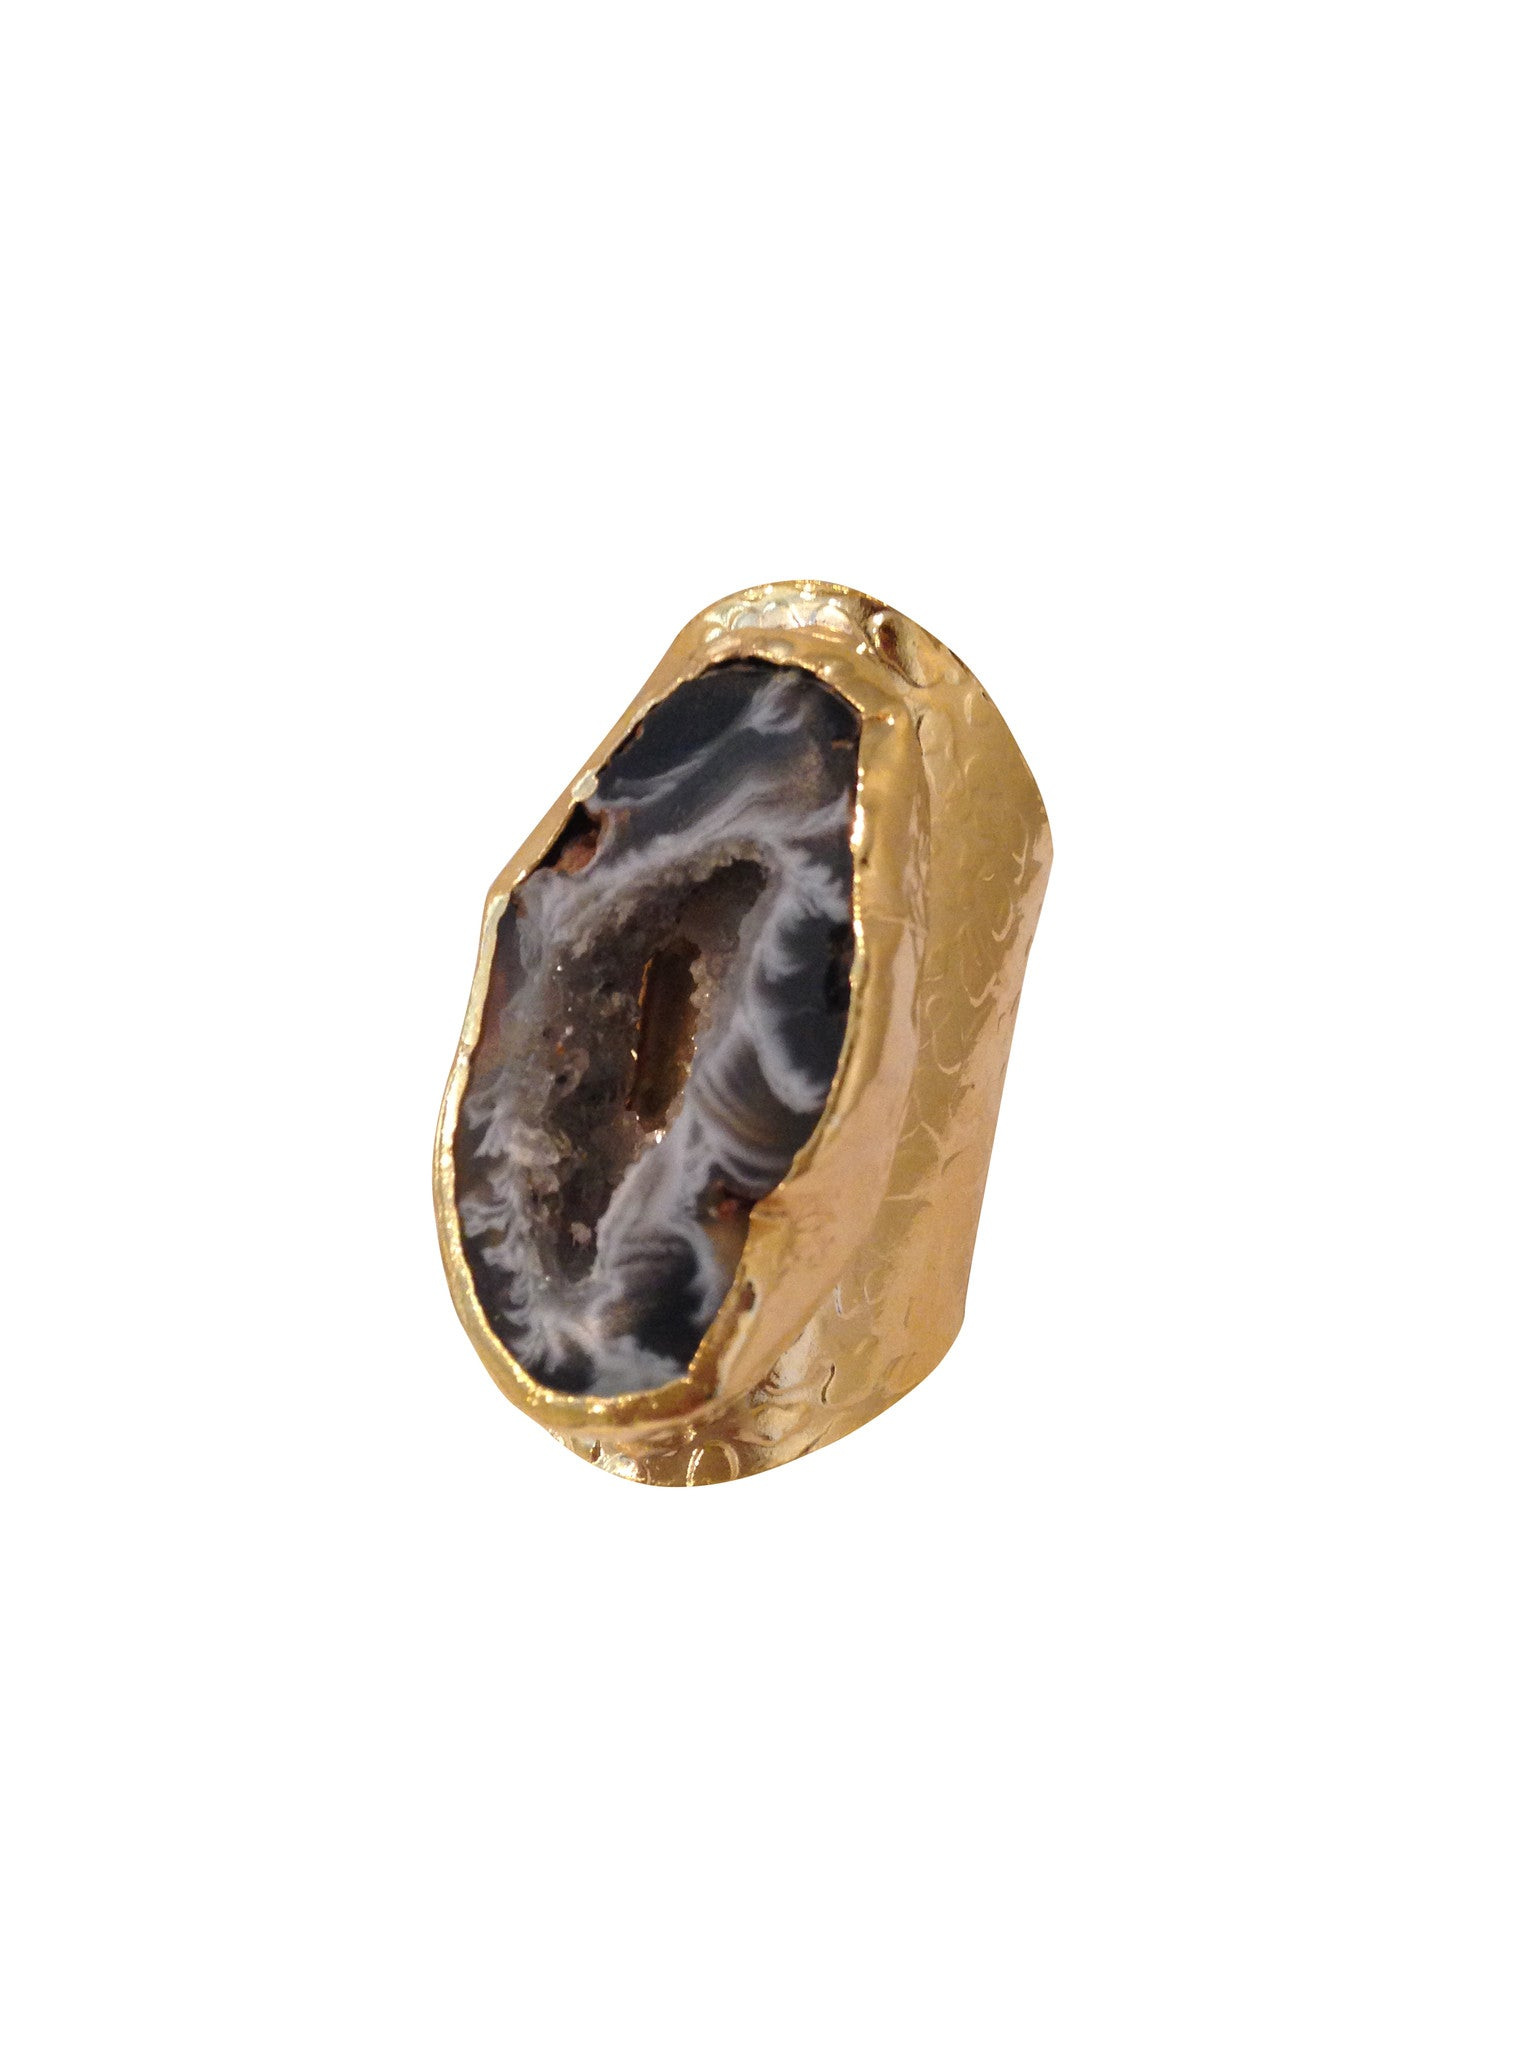 Agate Slice 24k Gold Ring